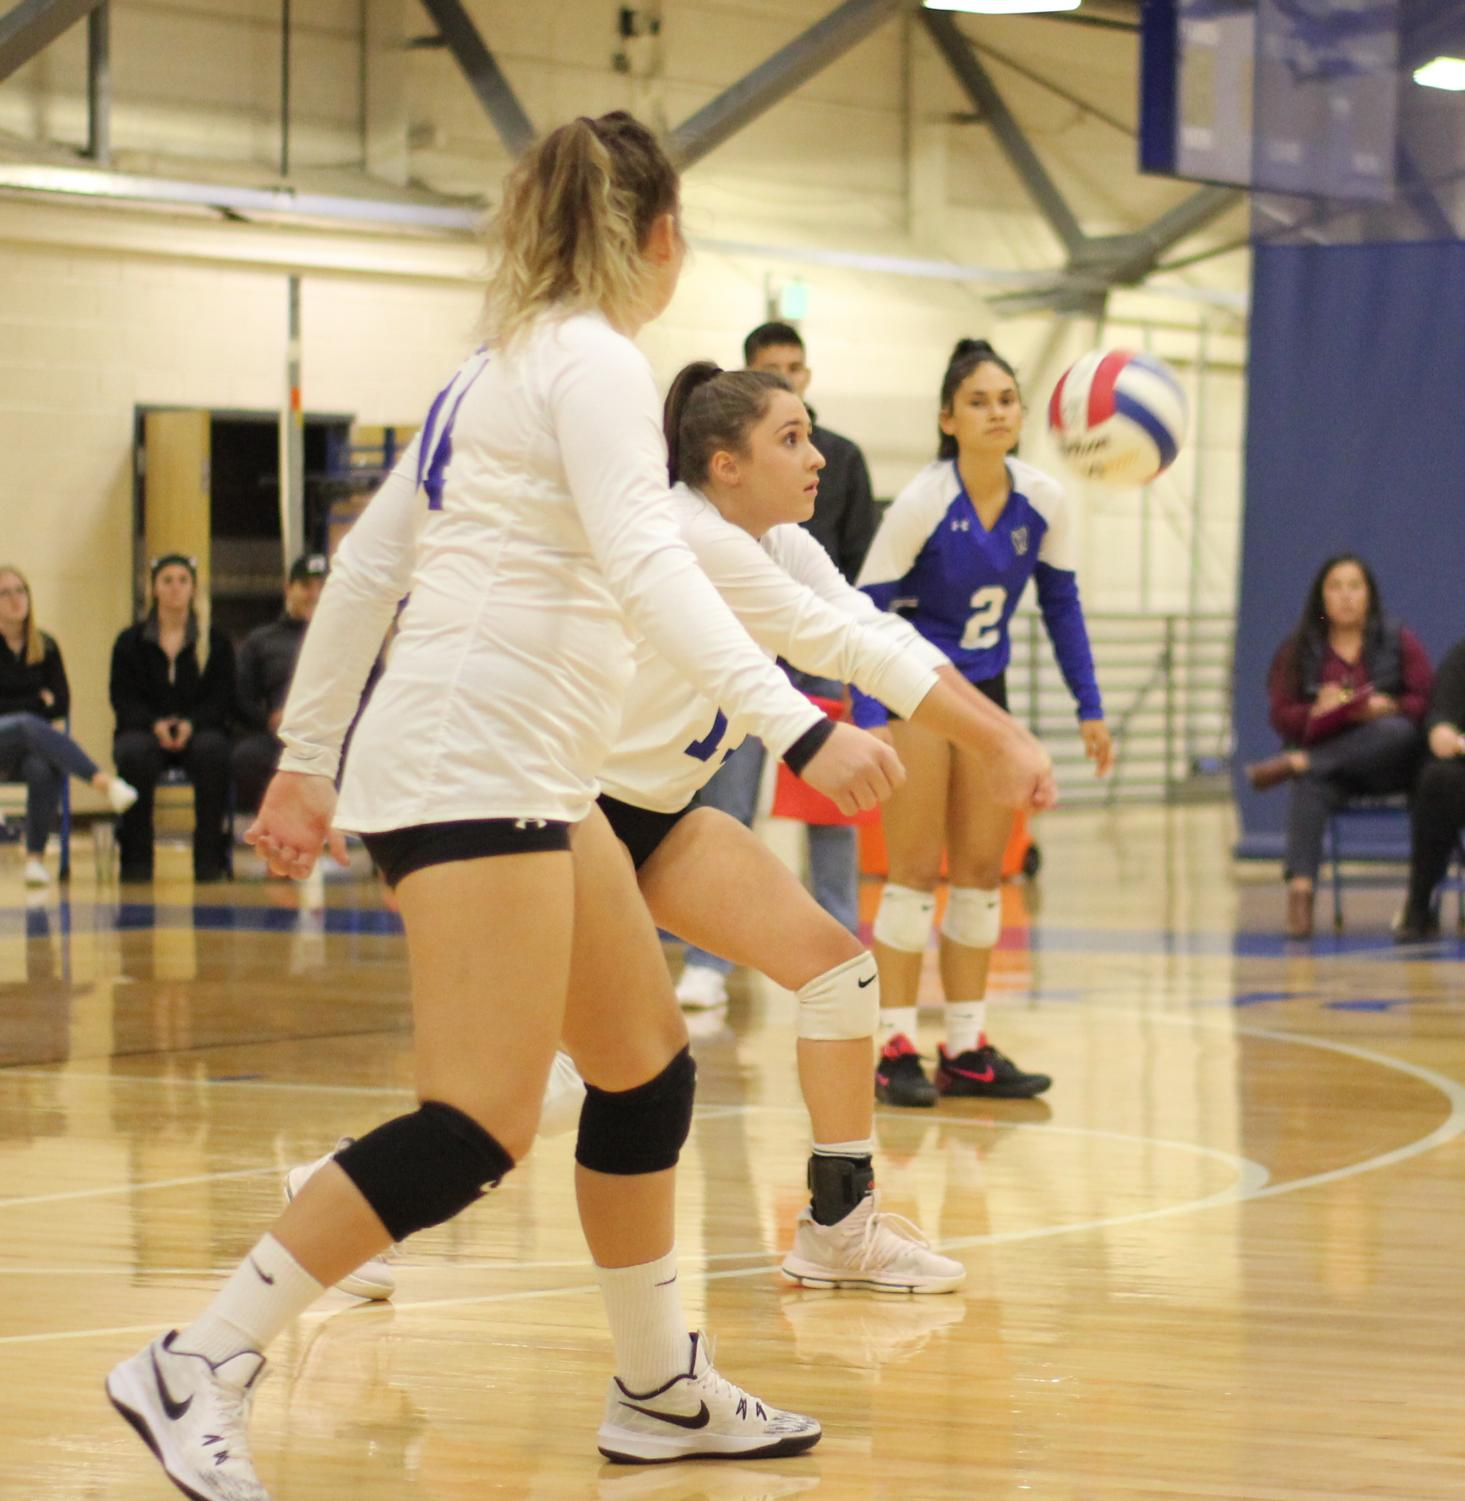 Deveyn+Hainey+gets+into+position+ready+to+bump+a+ball+spiked+over+the+net.+